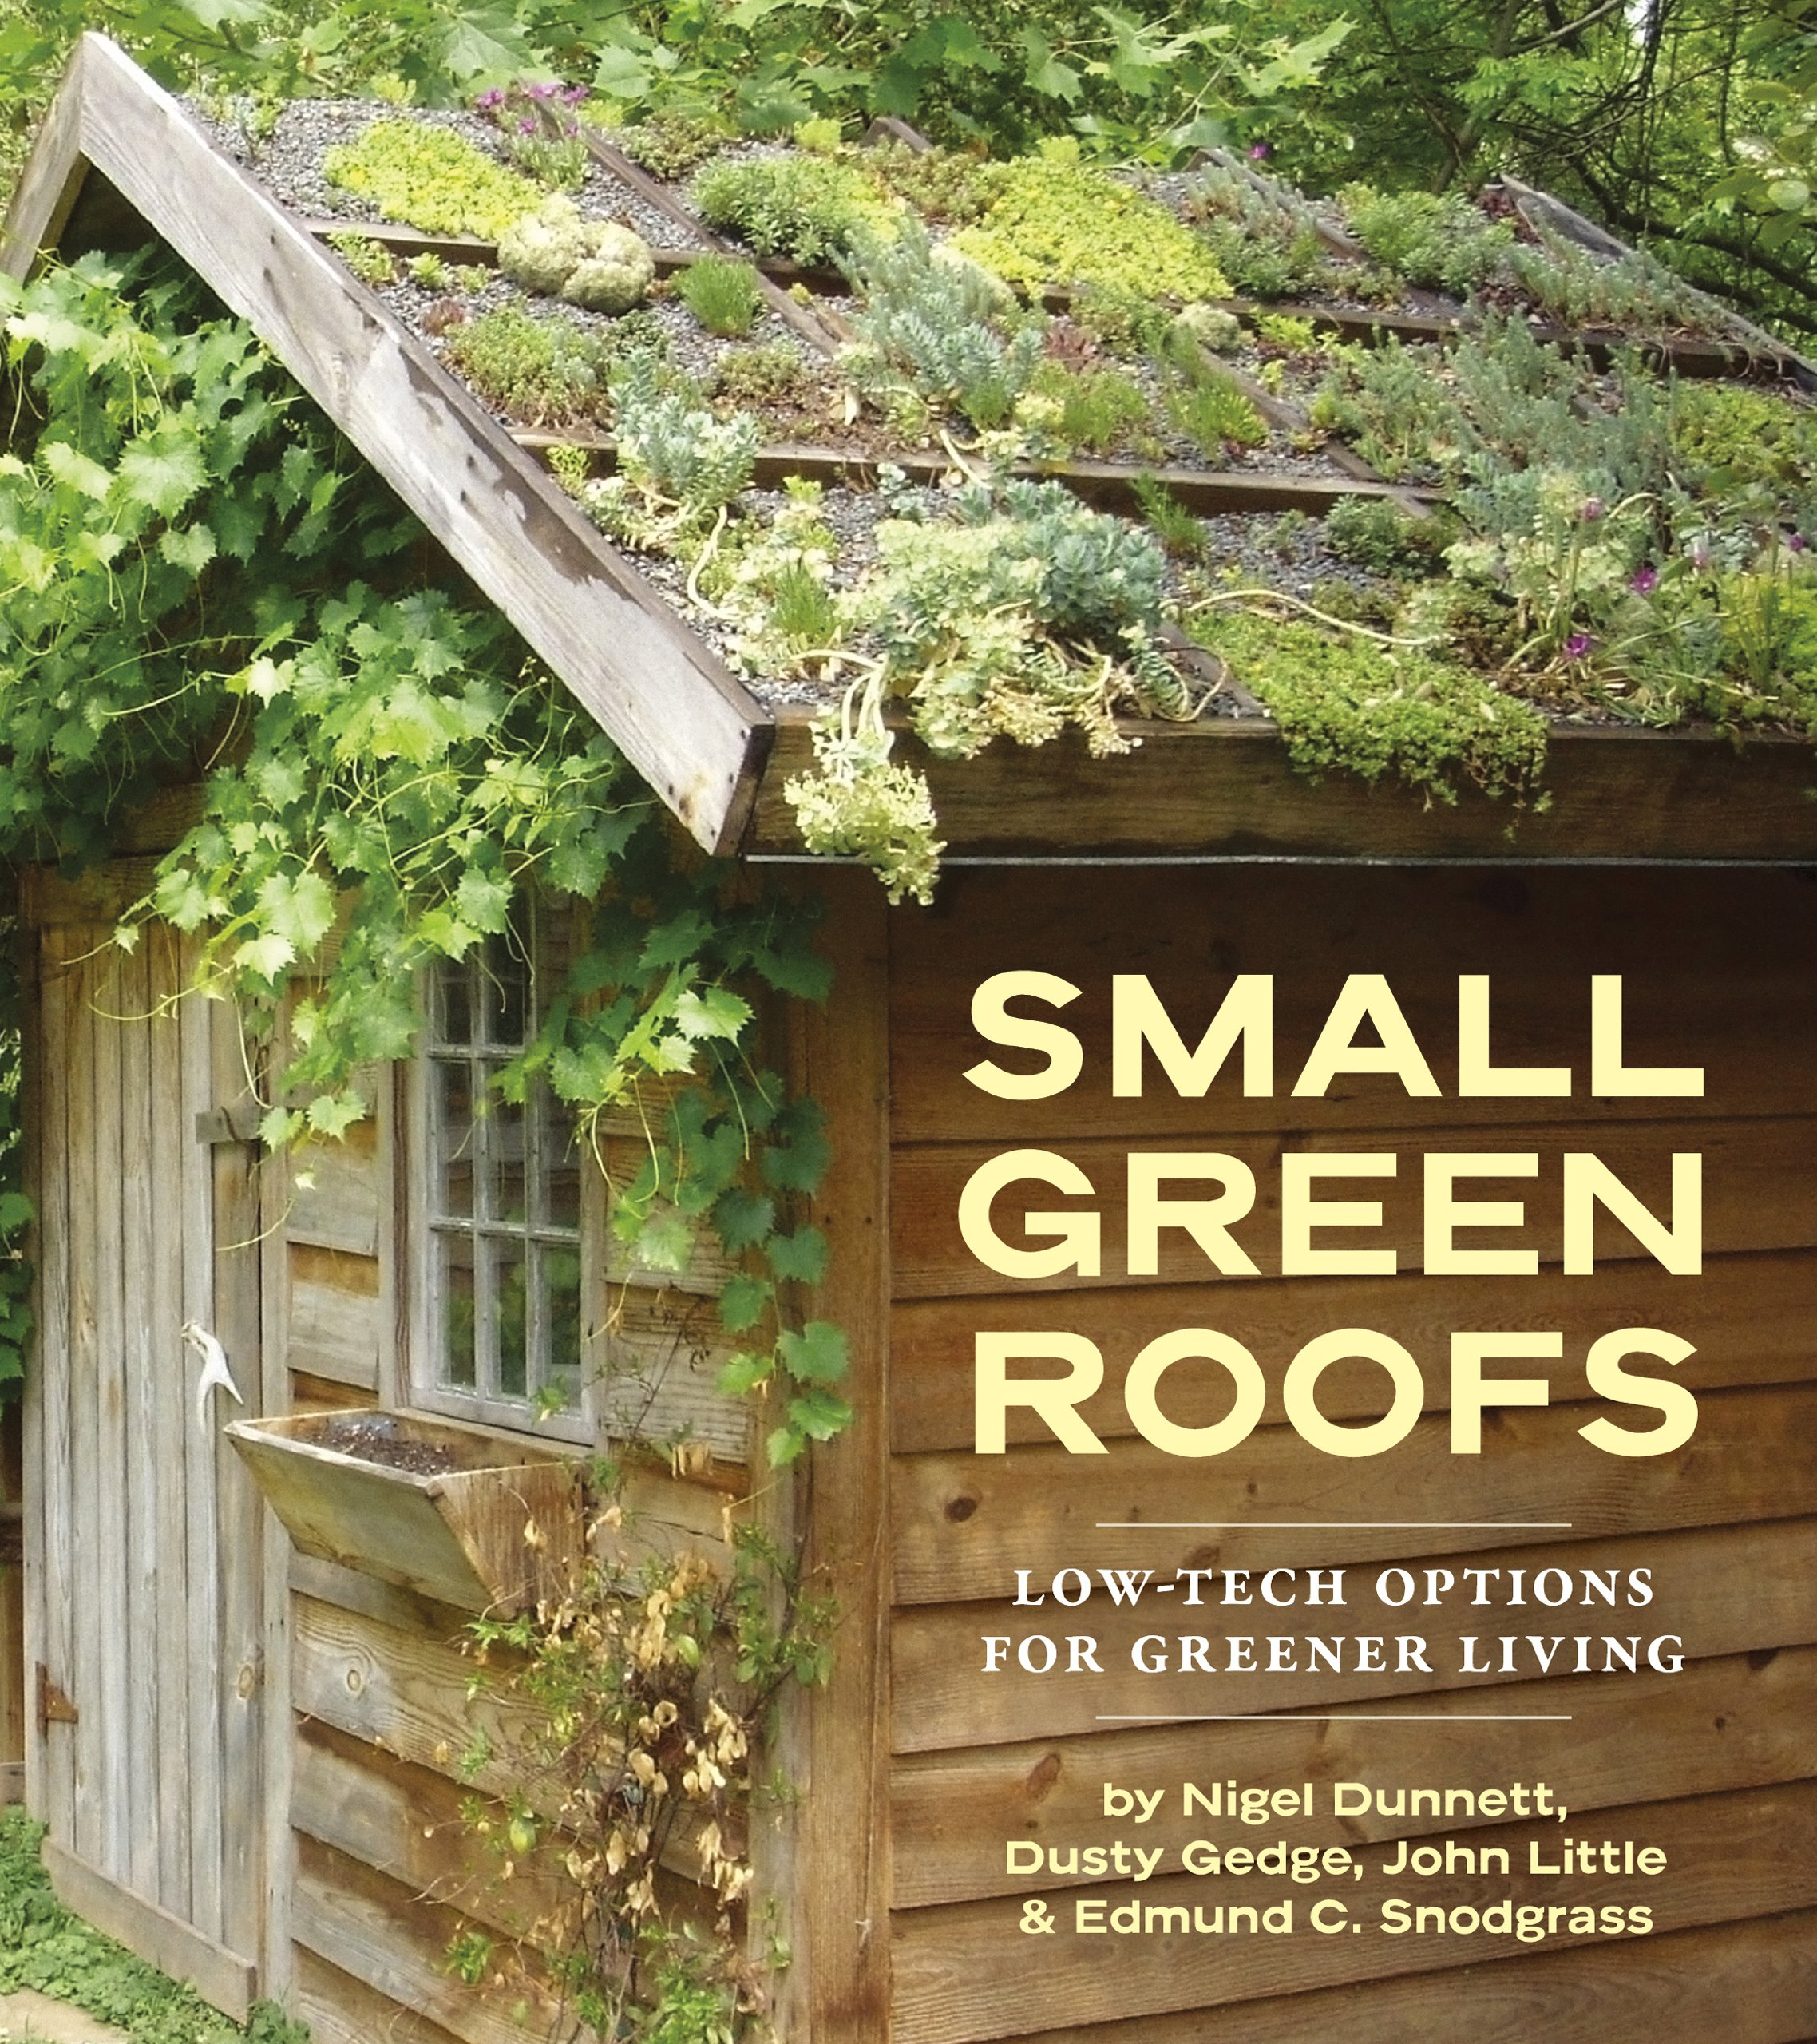 amazon small green roofs low tech options for greener living